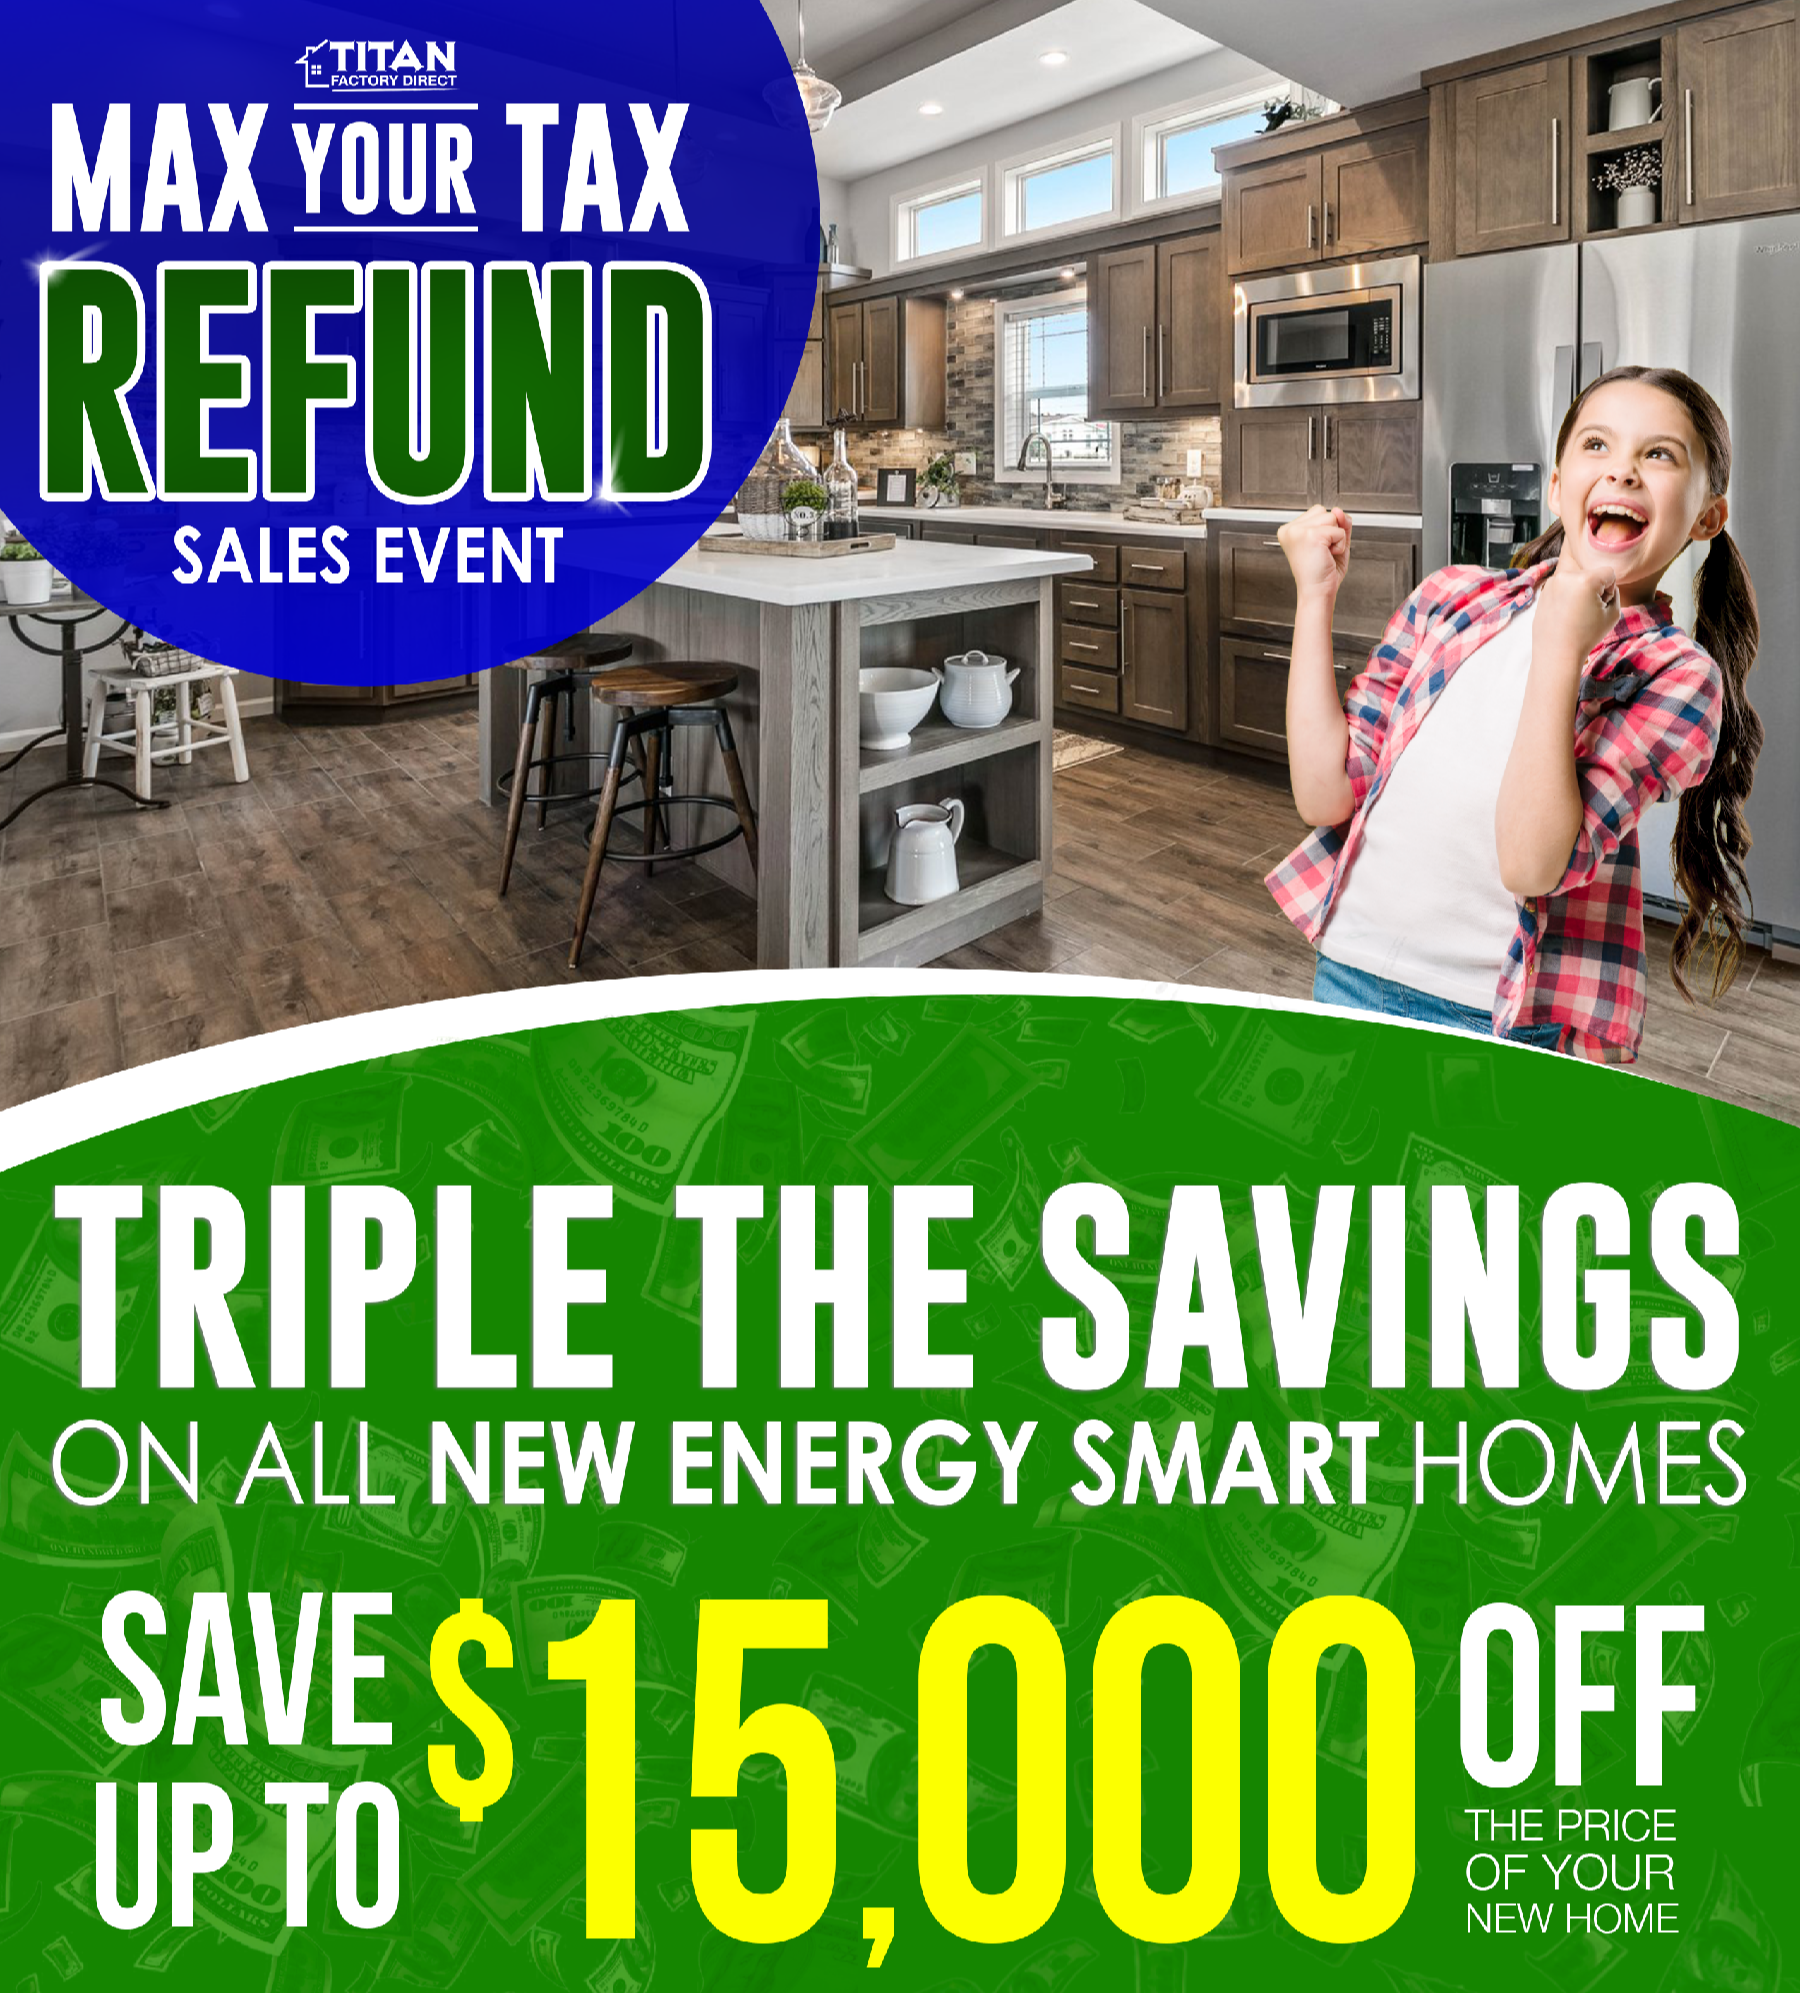 2_2019 max your tax flyer-1-1